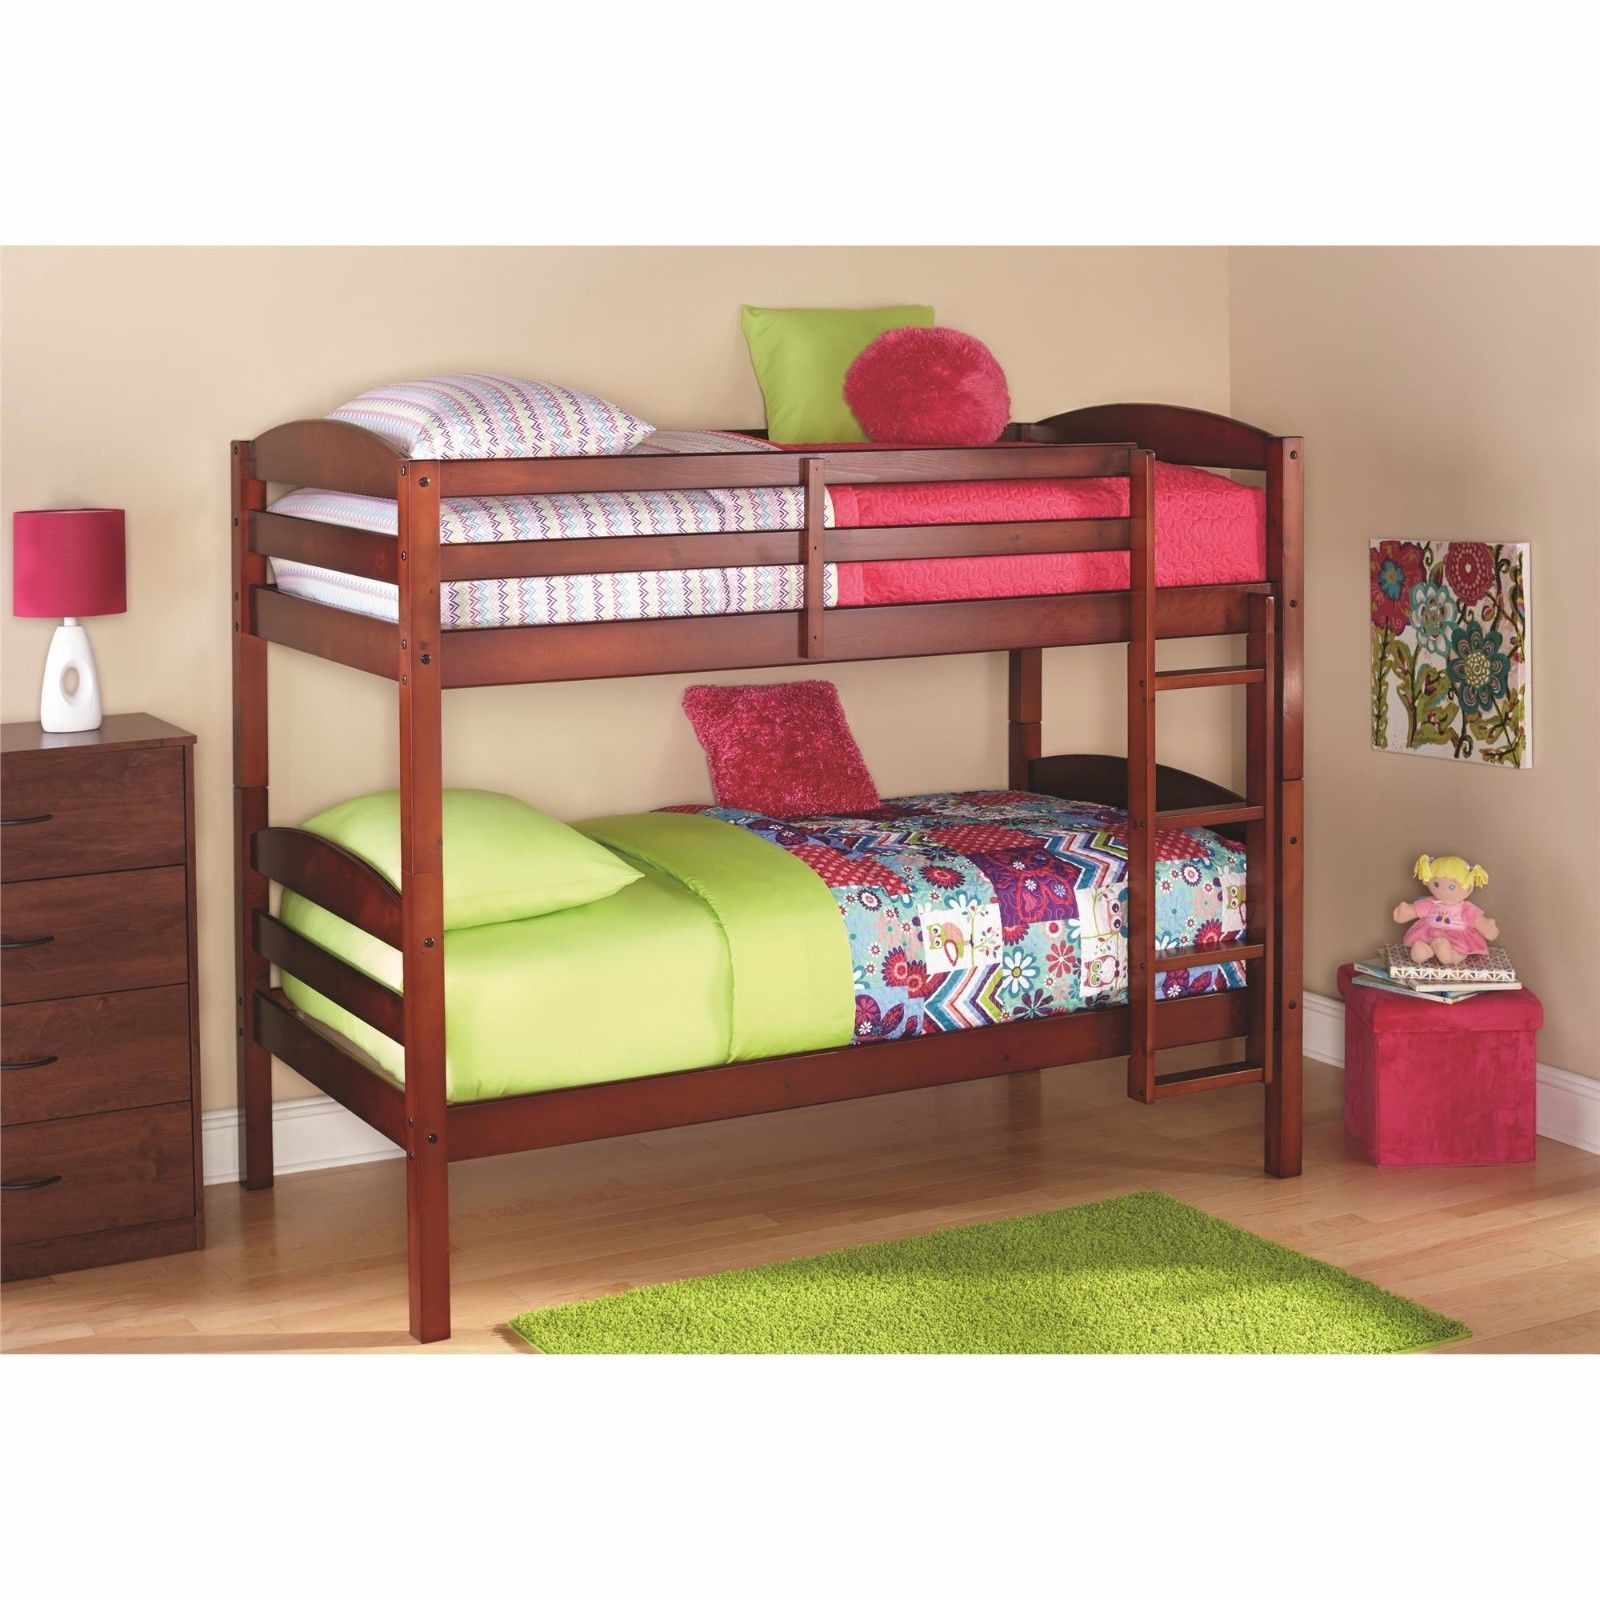 Loft bed with slide and tent  Bedroom Furniture  Mainstays Twin Over Twin Wood Bunk Bed New